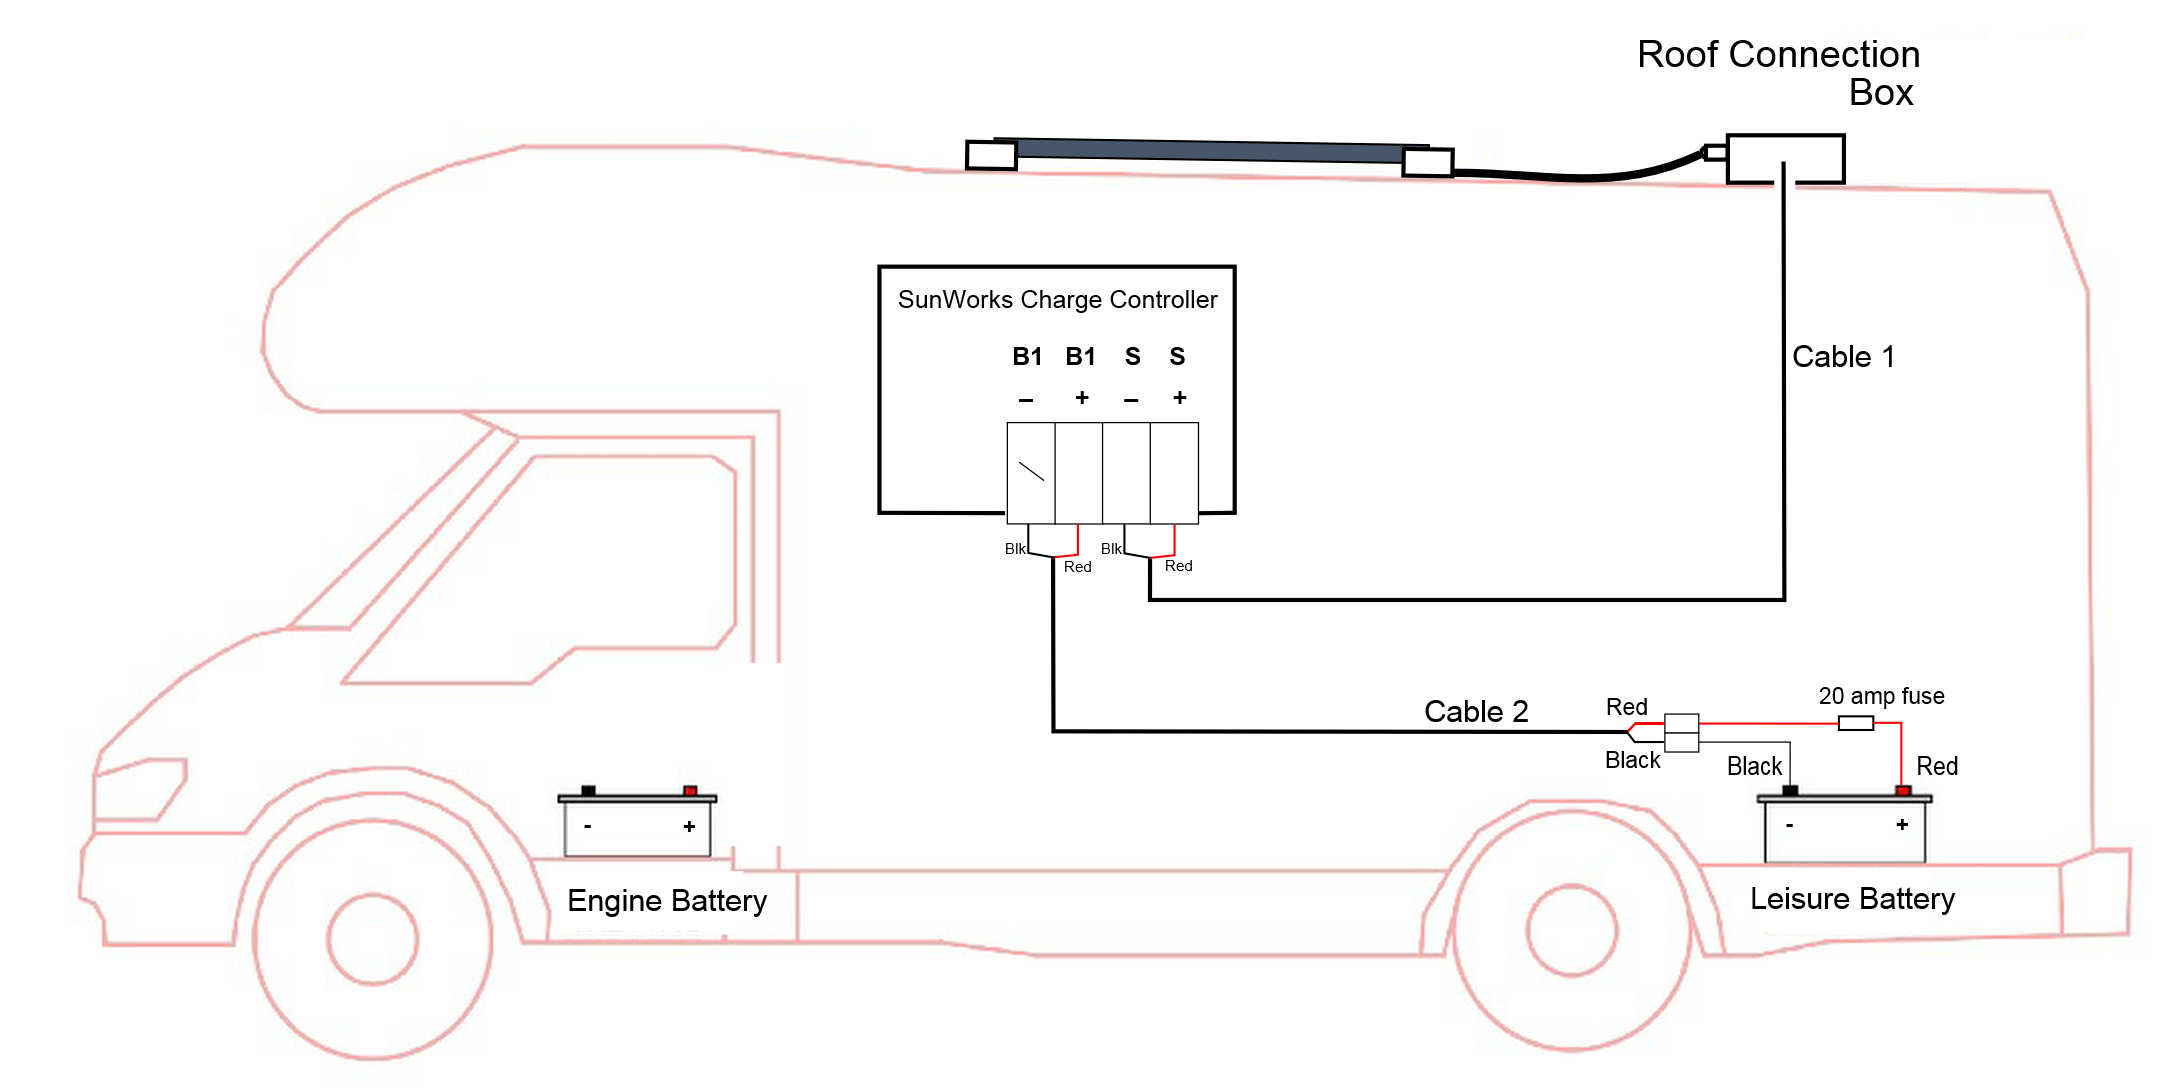 Solar Panel Wiring Diagram For Motorhome from sunworks.co.uk